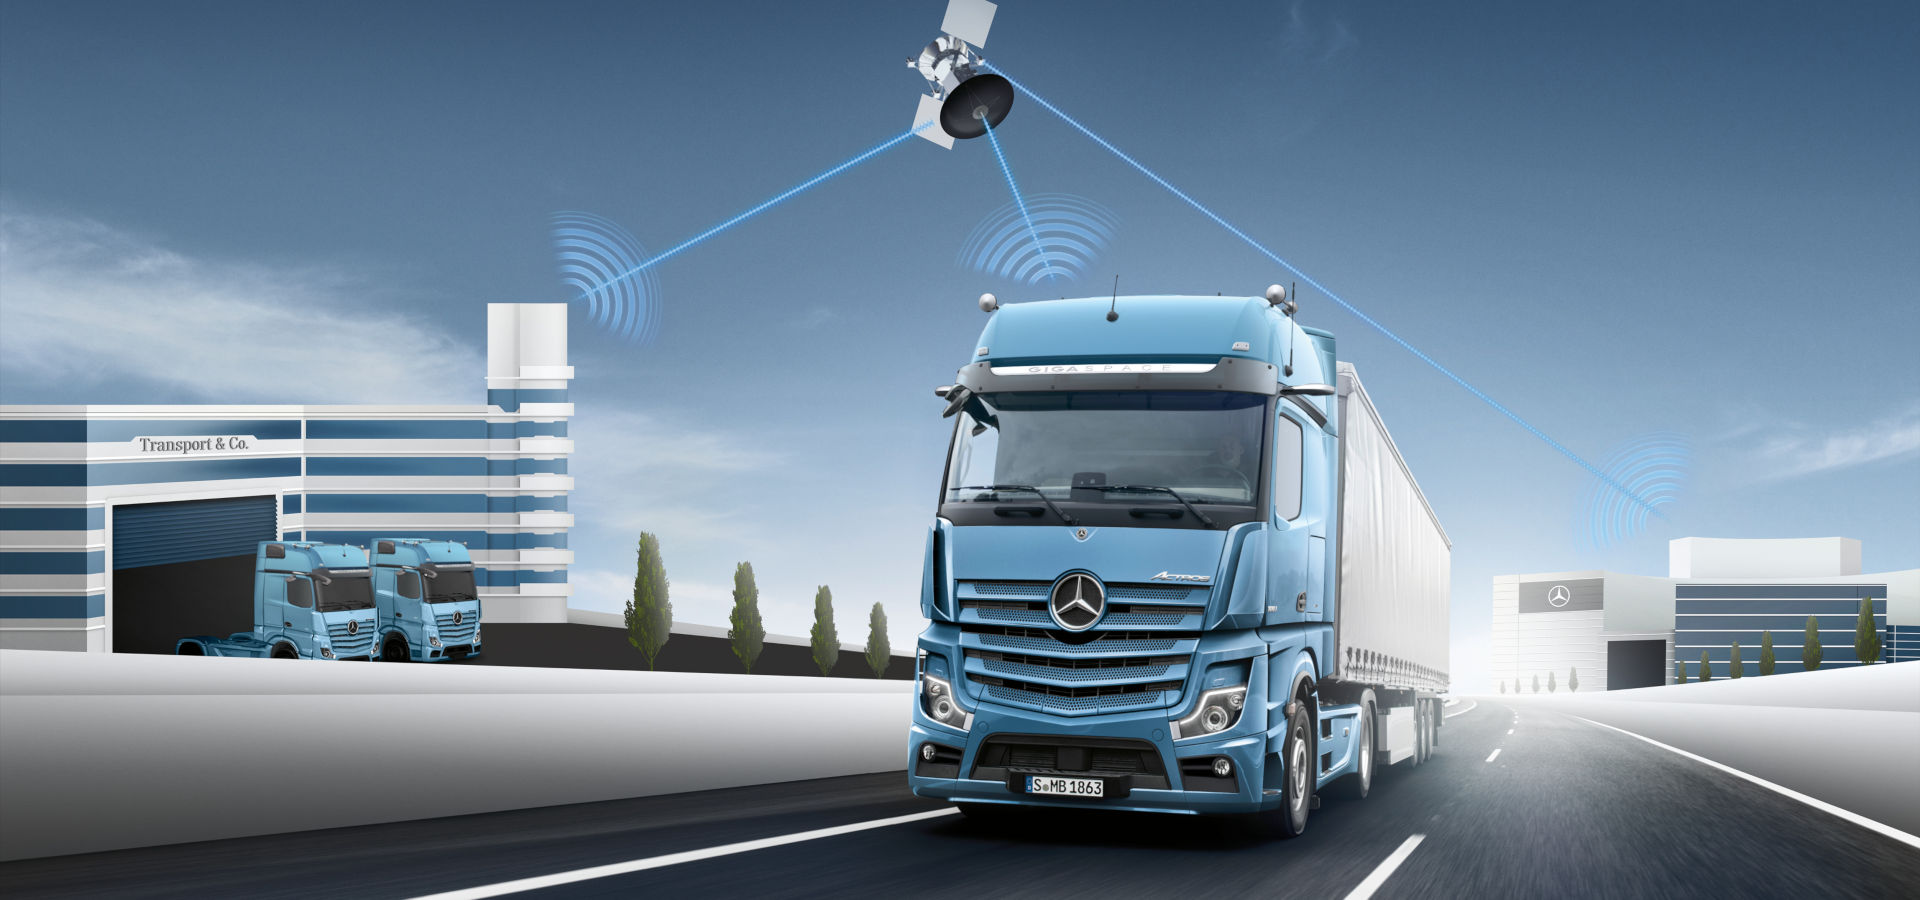 Uptime facts intelligente vernetzung mercedes benz uptime for Facts about mercedes benz